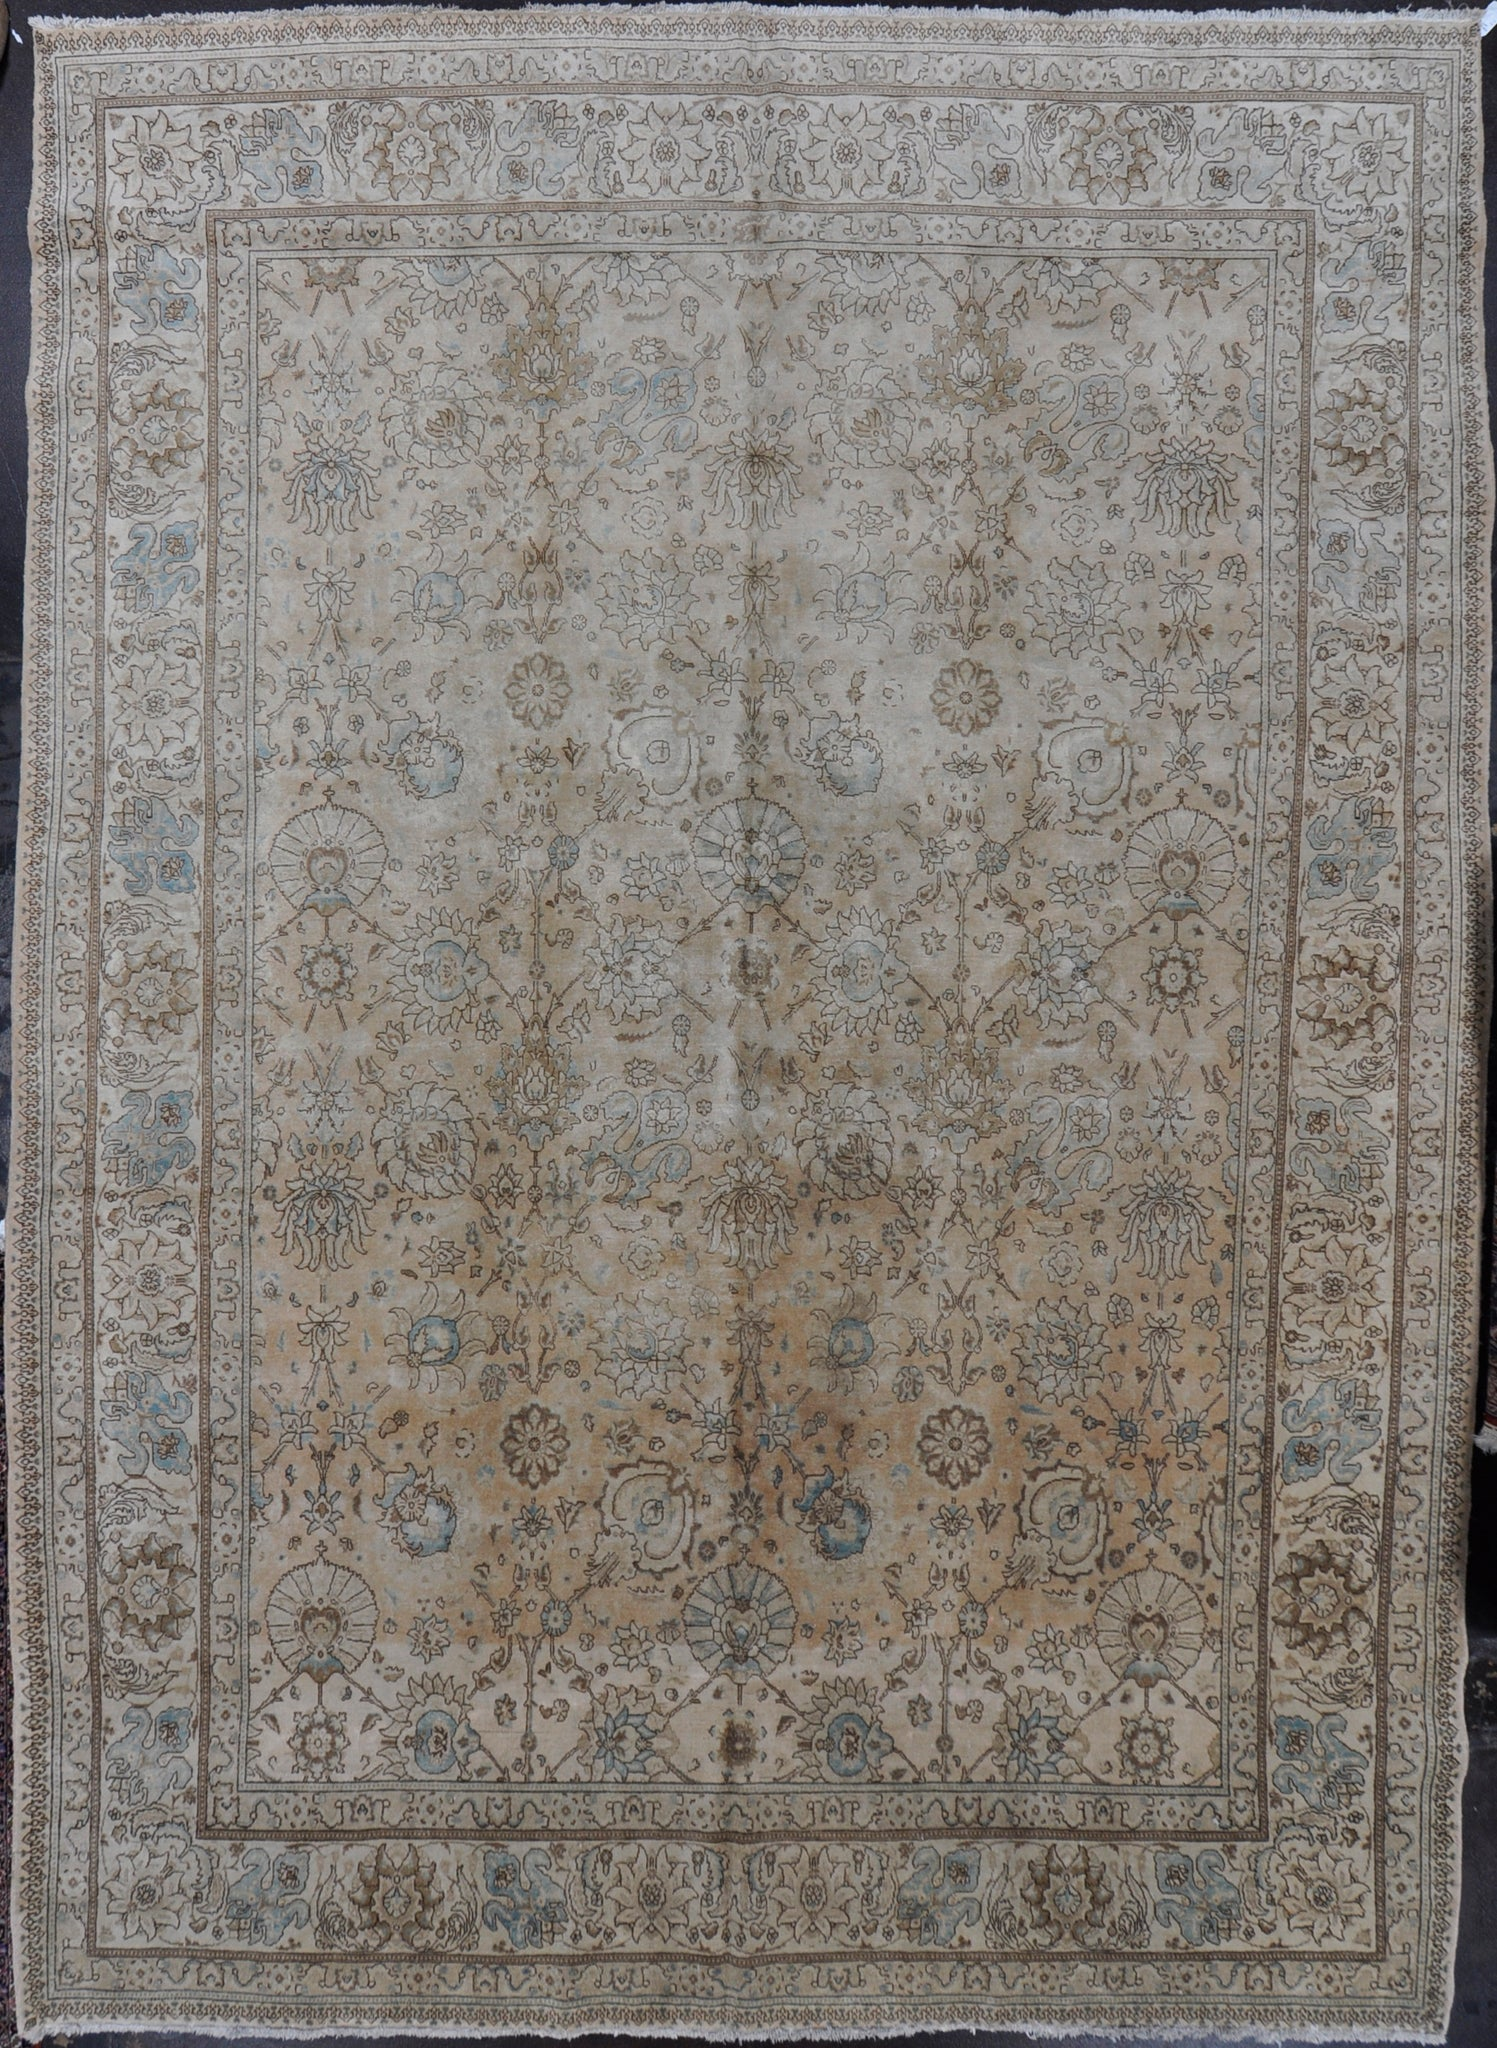 Rug Id:3060 Antique Tabriz 11.6x16.0